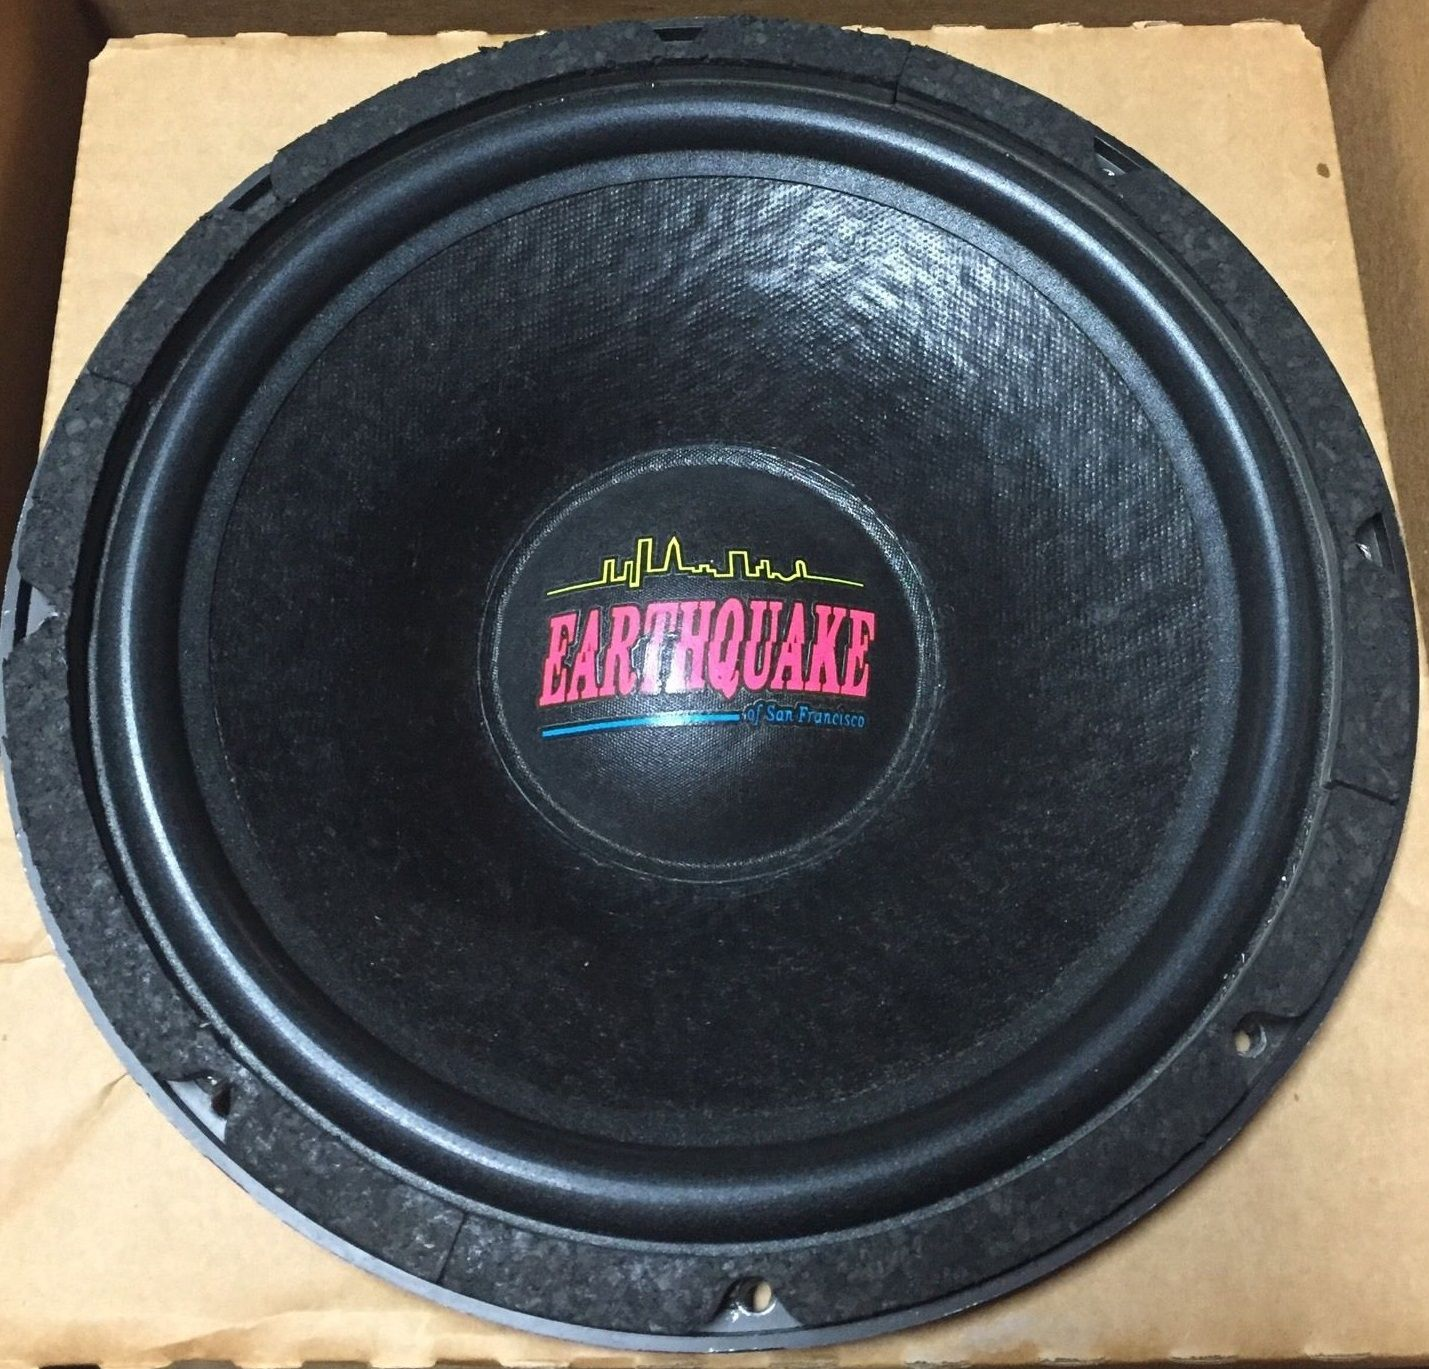 12-Inch Earthquake Subwoofers